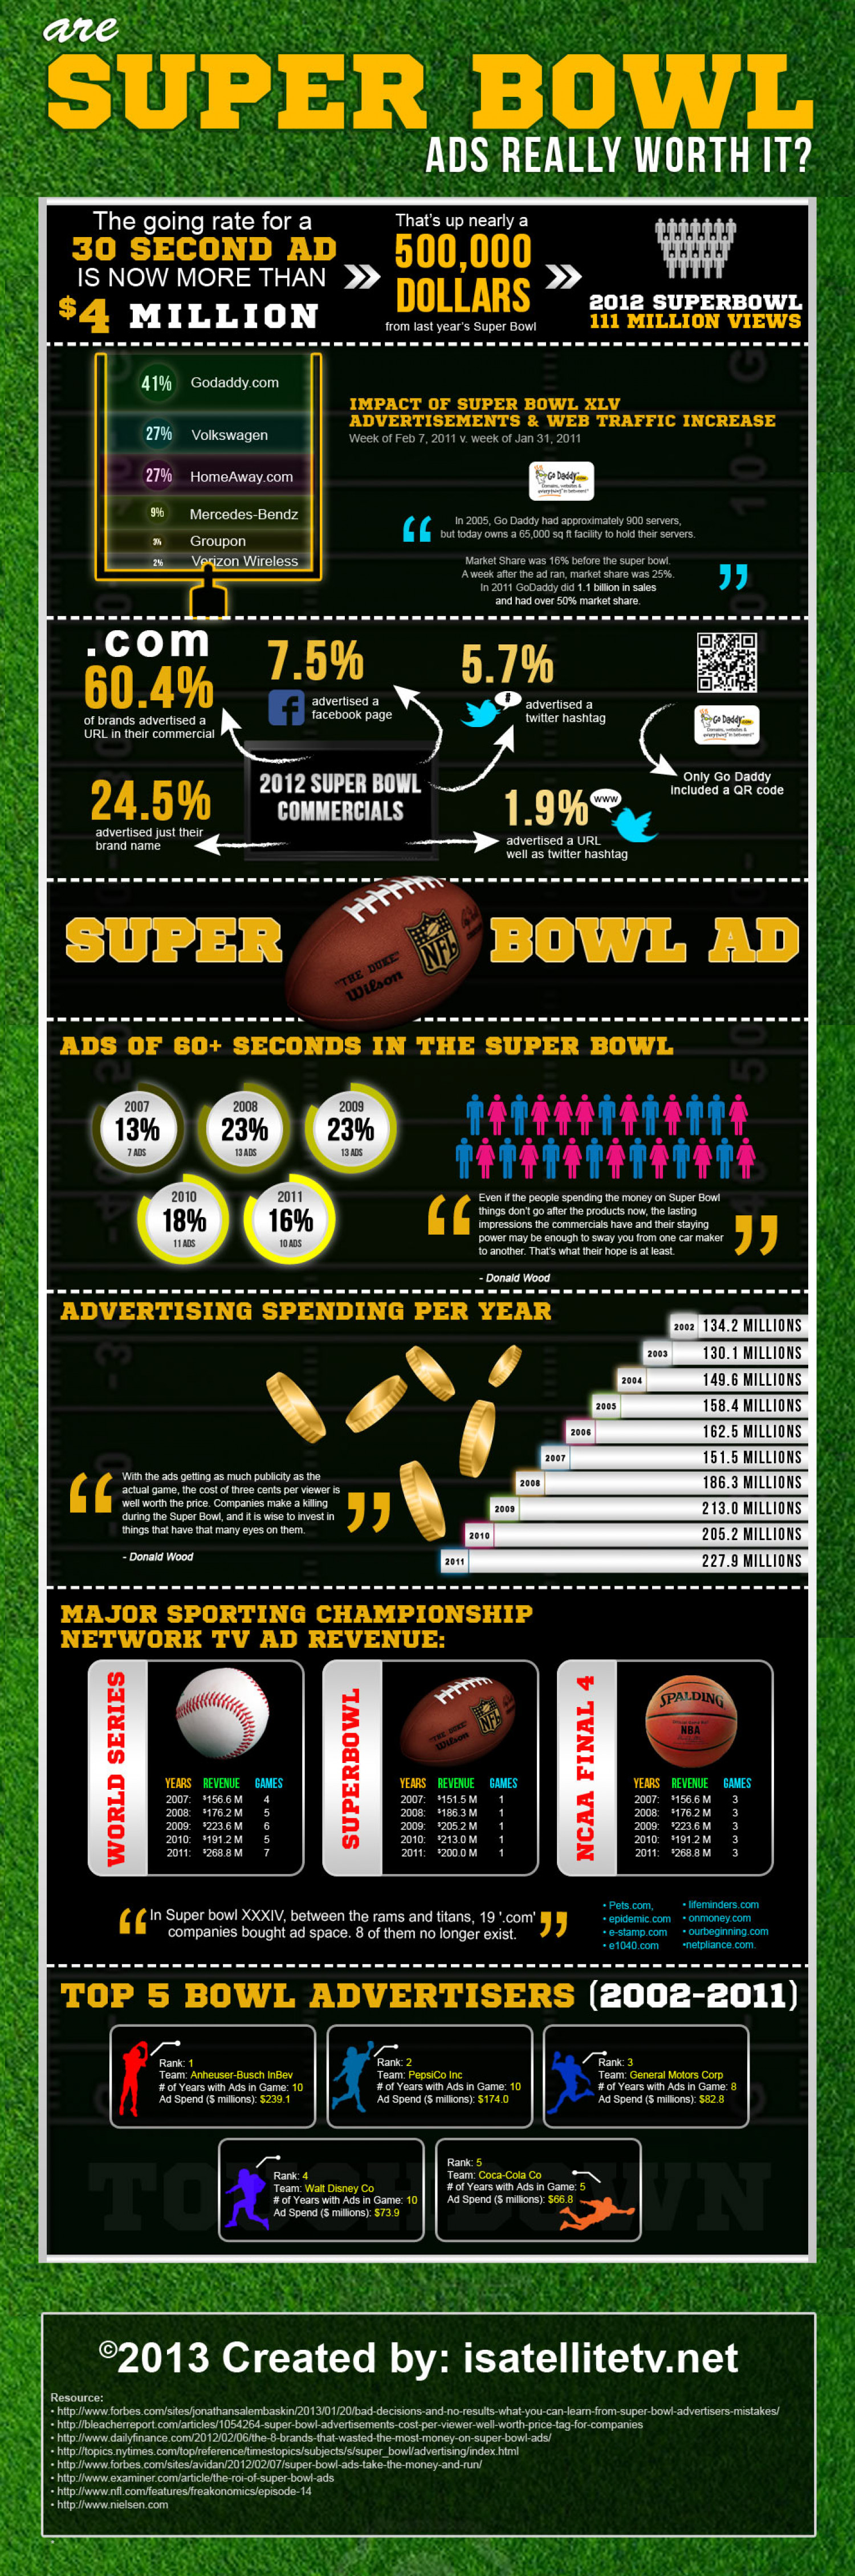 Are Super Bowl Ads Really Worth it? Infographic